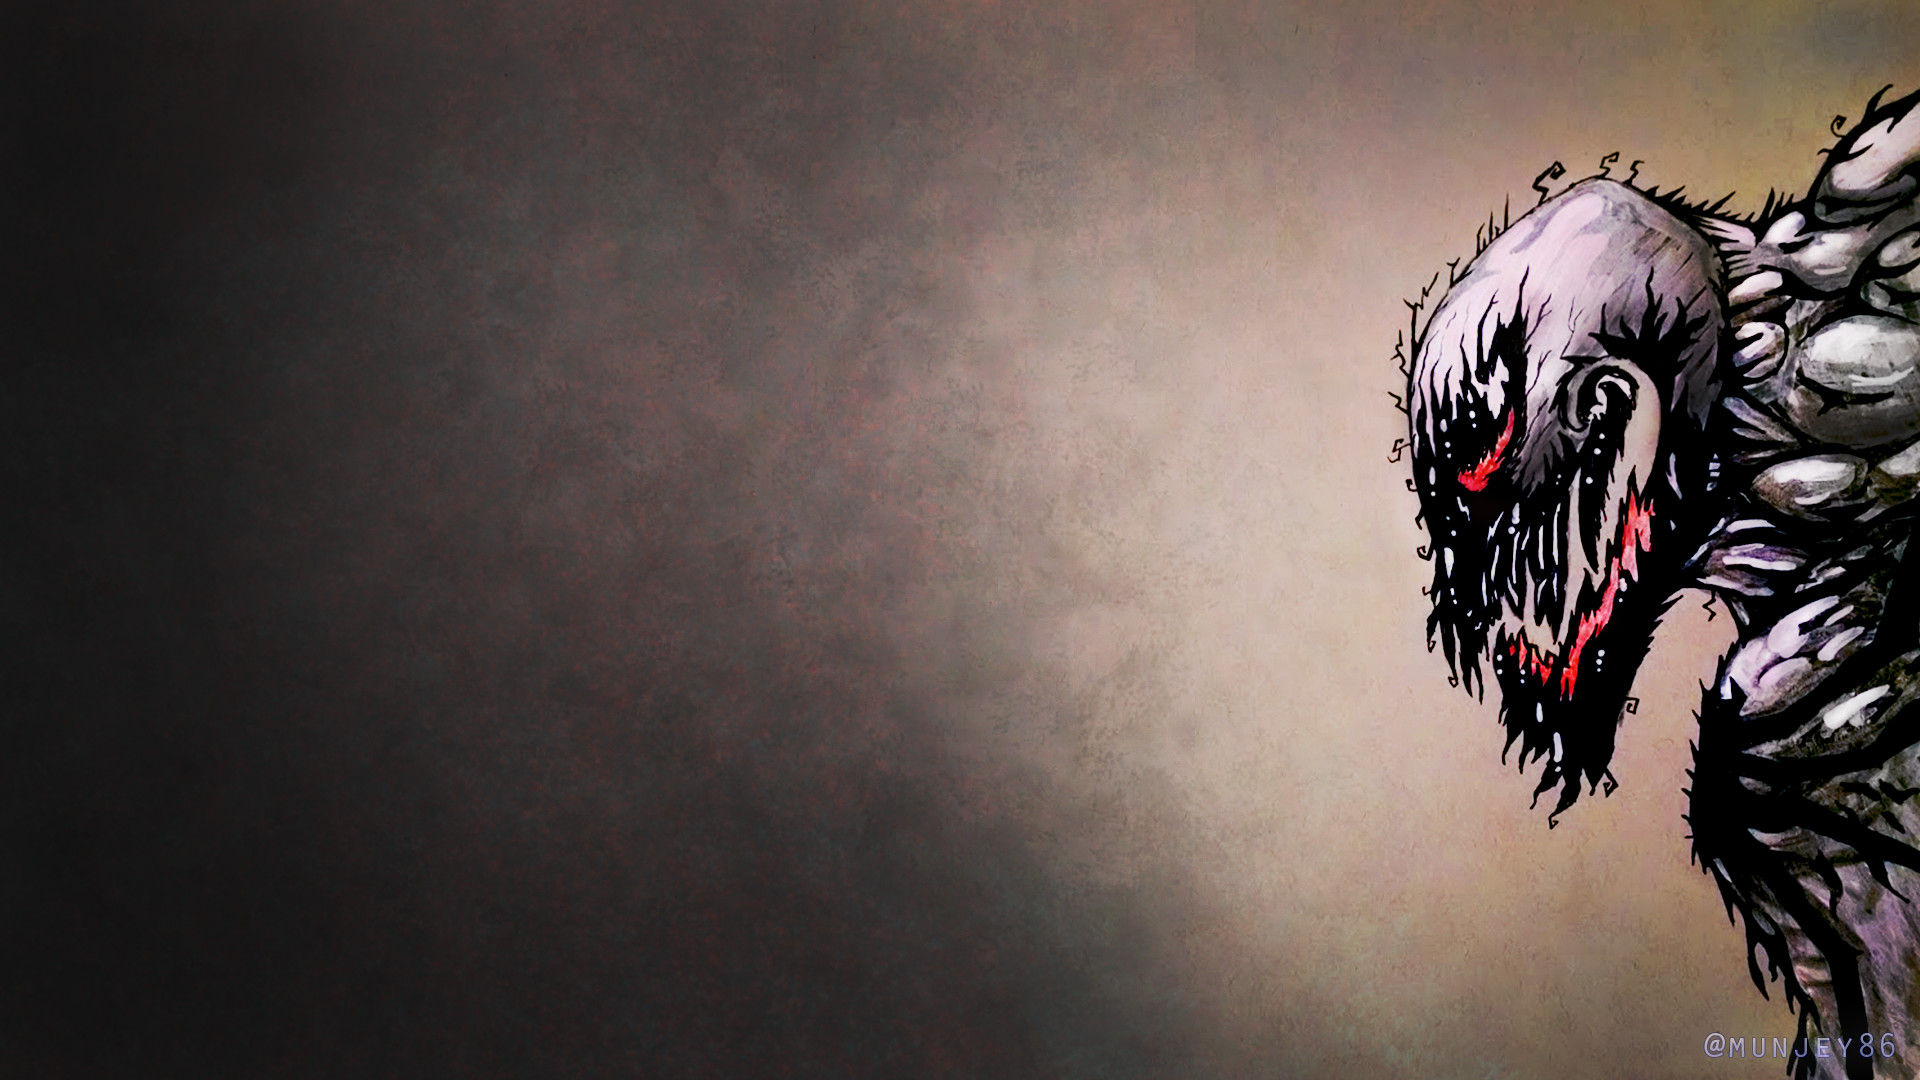 Anti Venom Wallpapers Widescreen with HD Wallpaper Resolution px  2.79 MB Movies Marvel Thunderbolts Spiderman